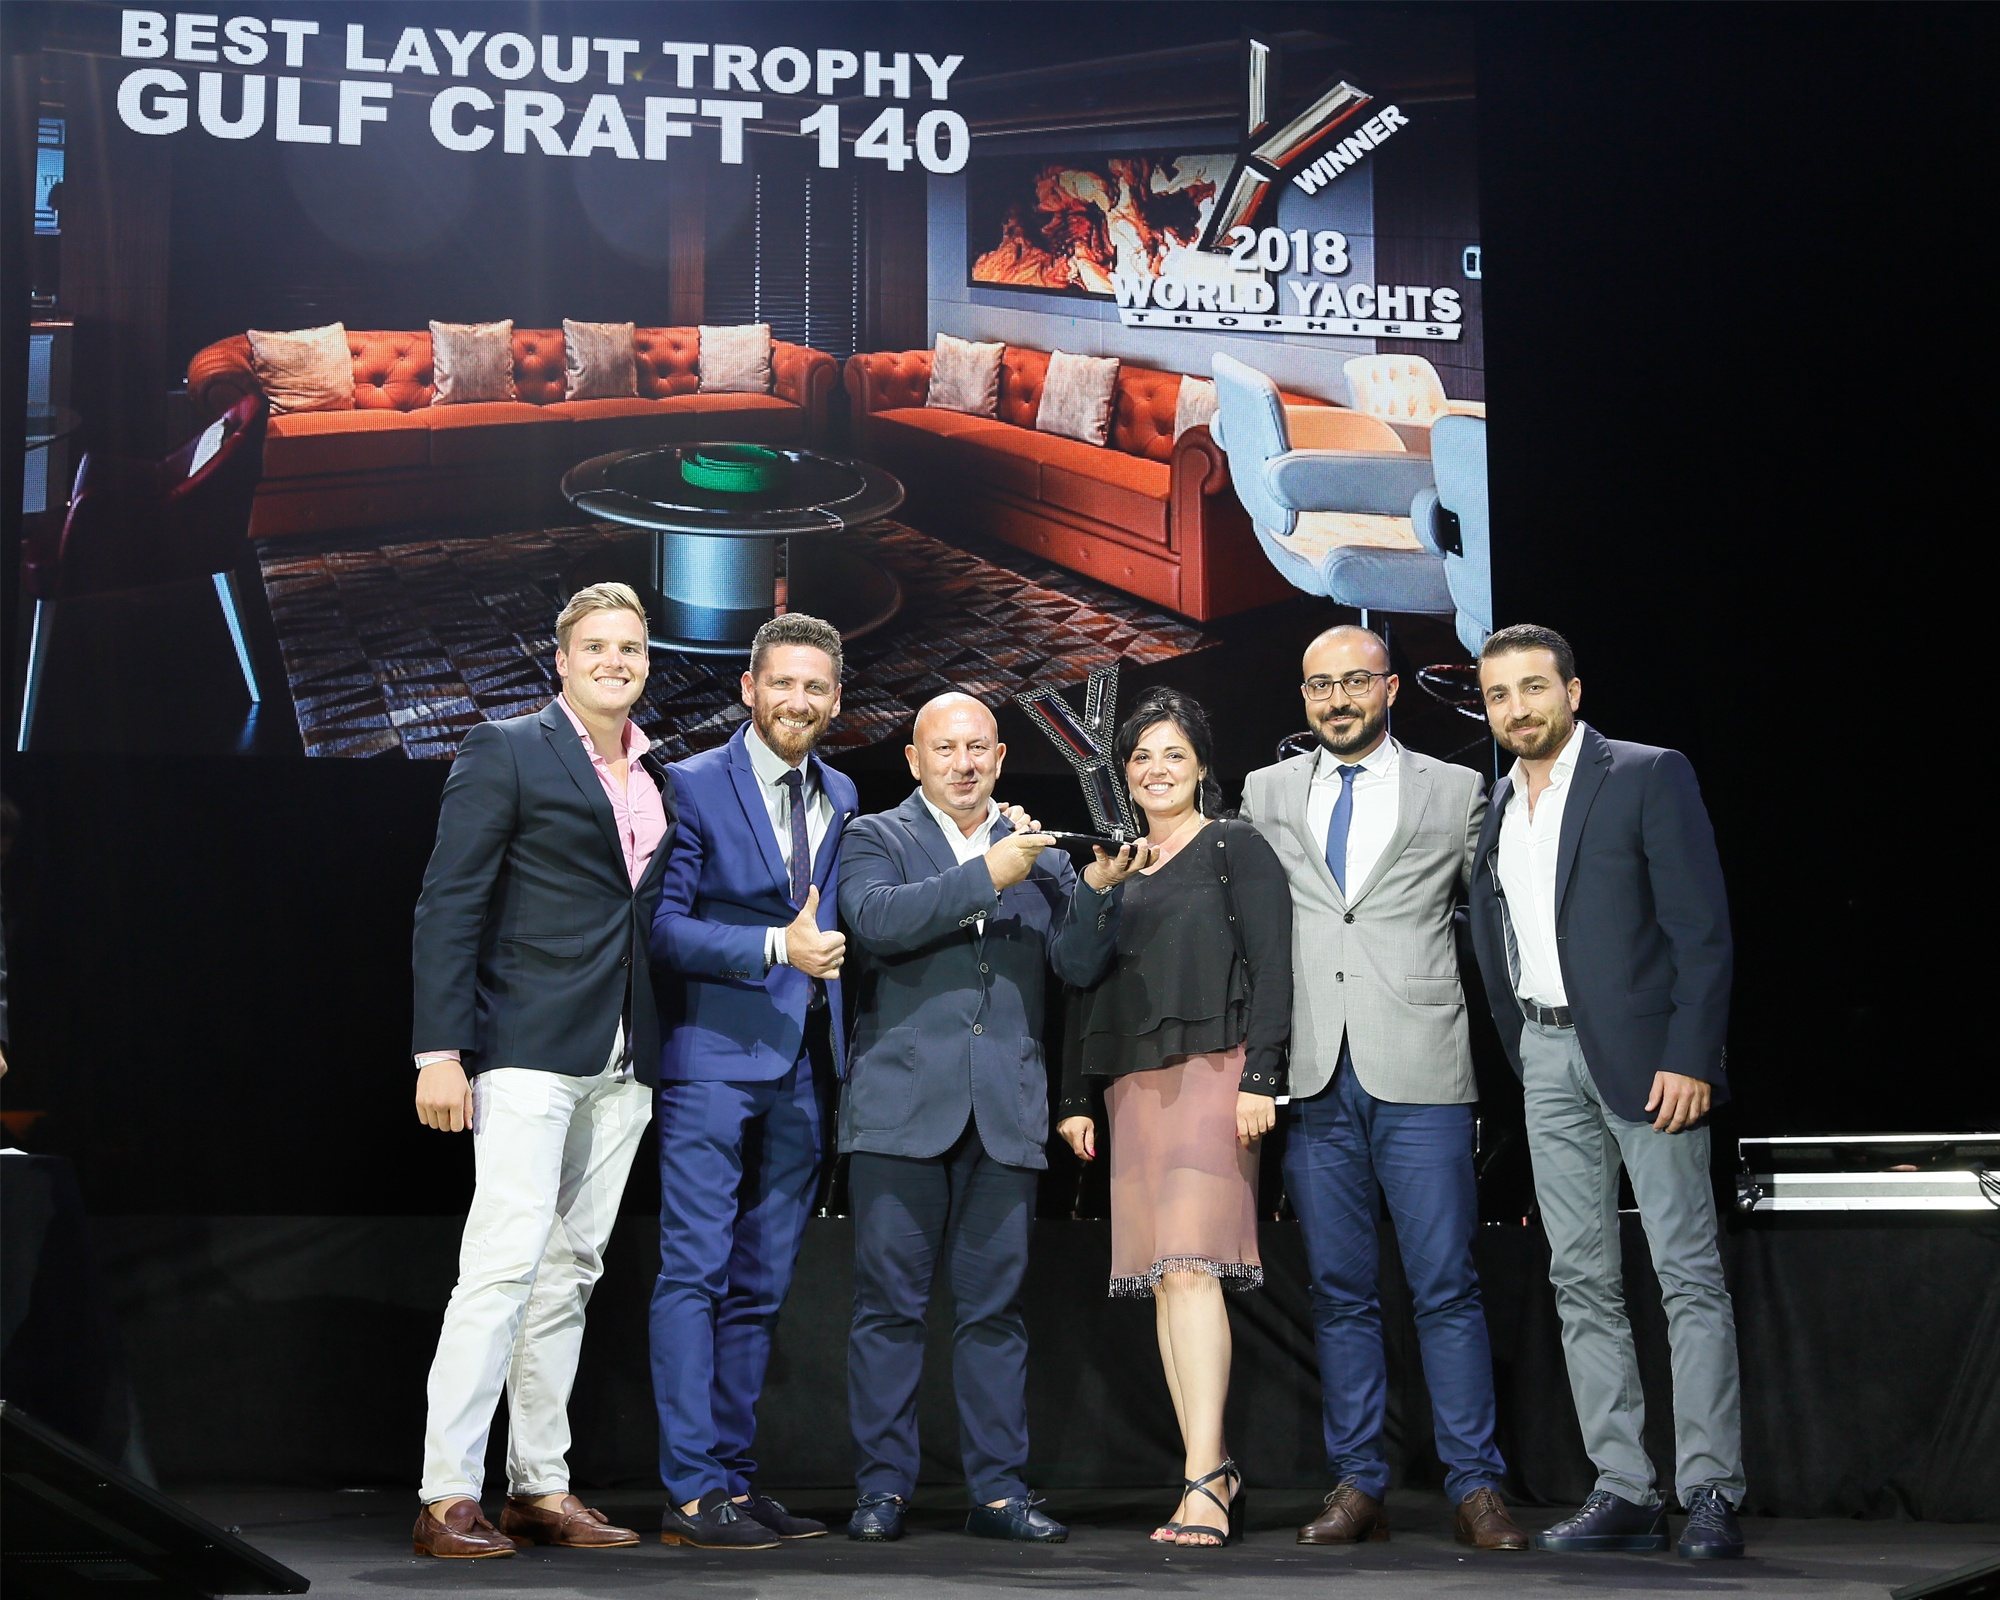 Gulf Craft wins at the 2018 World Yachts Trophies